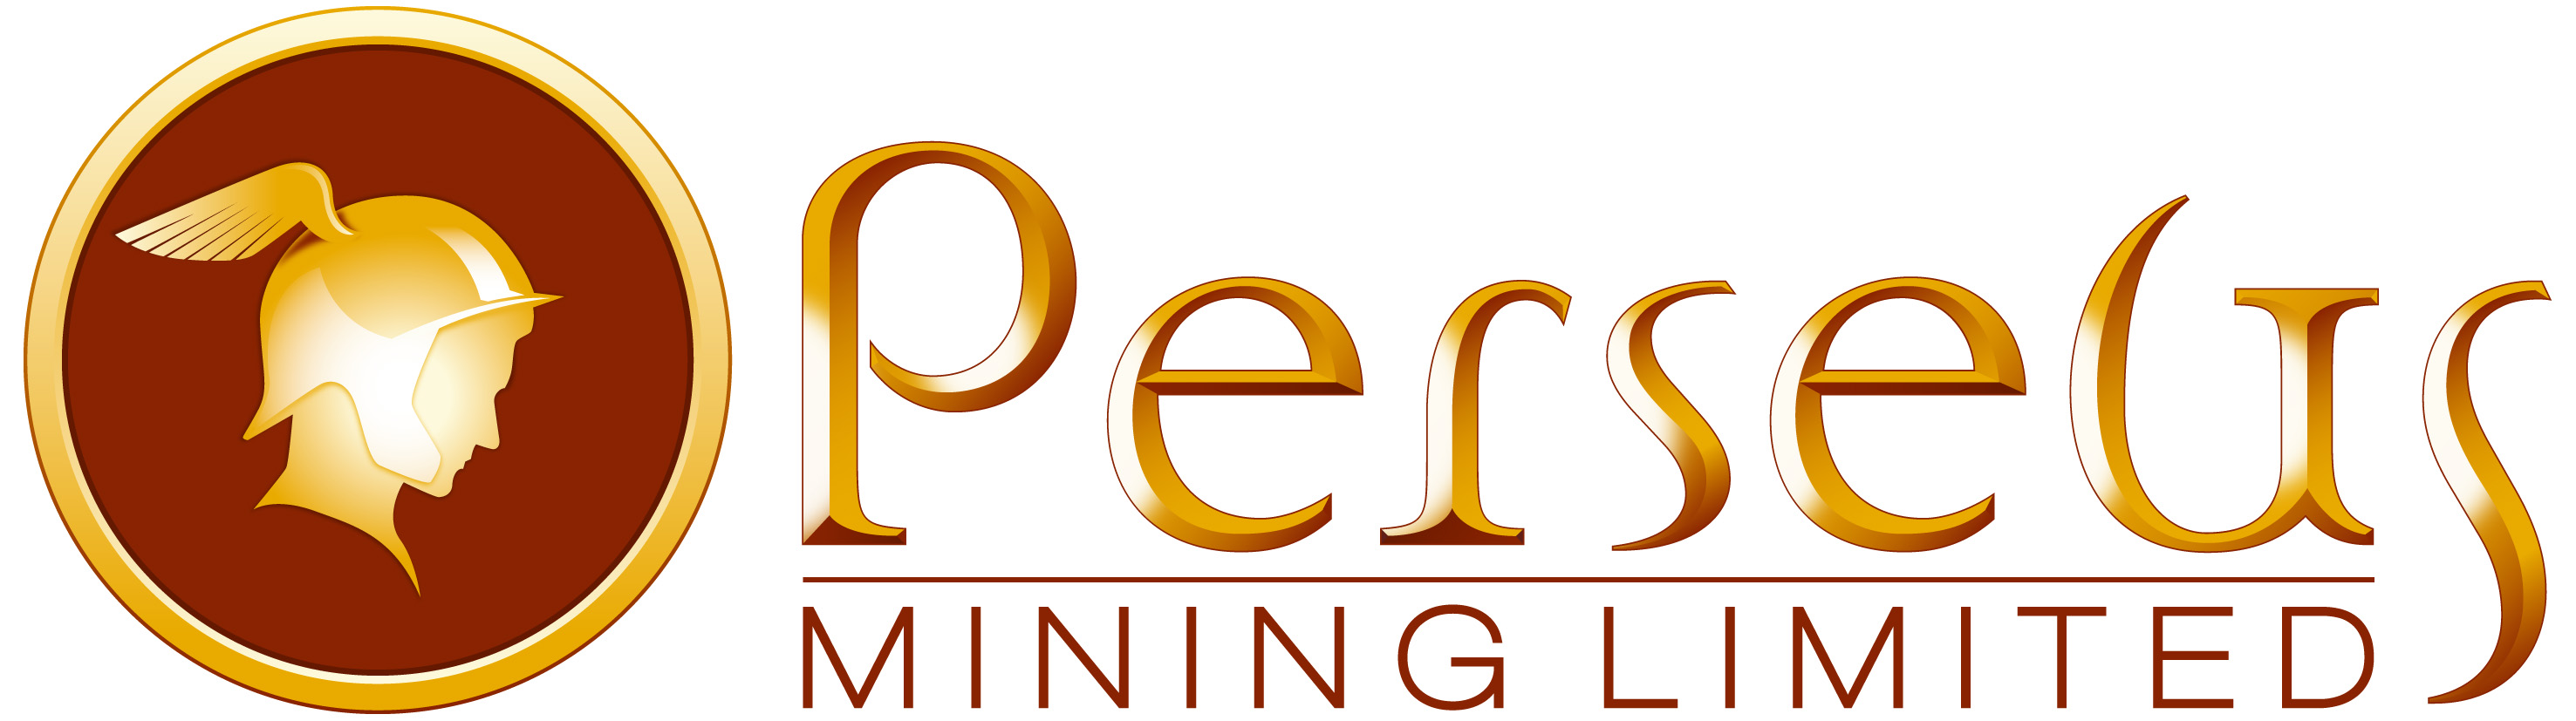 PERSEUS MINING LIMITED